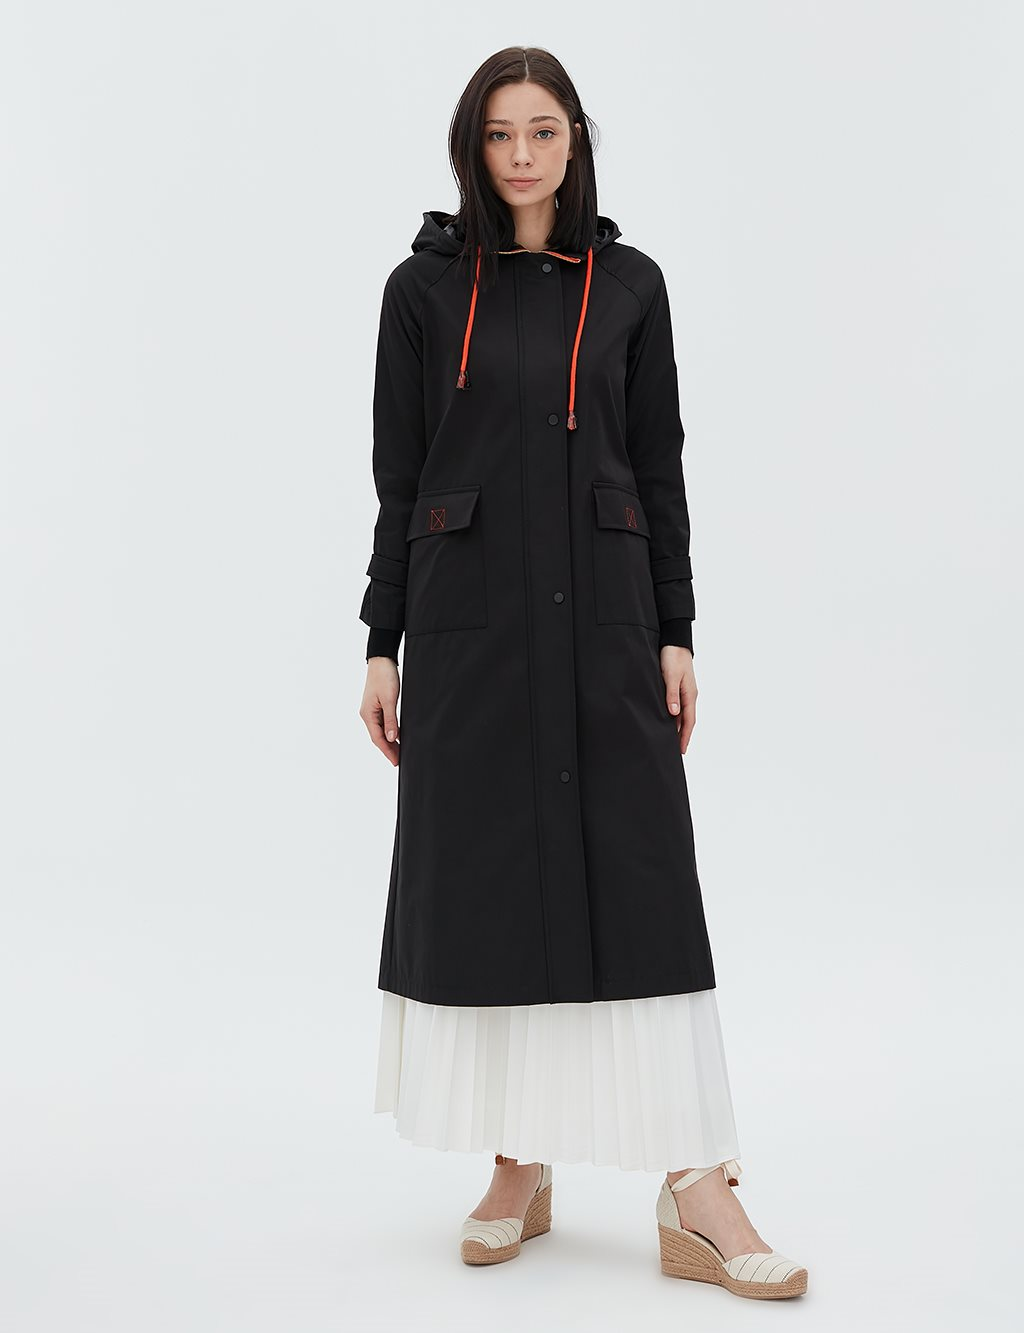 Overcoat With Hood B20 24004 Black